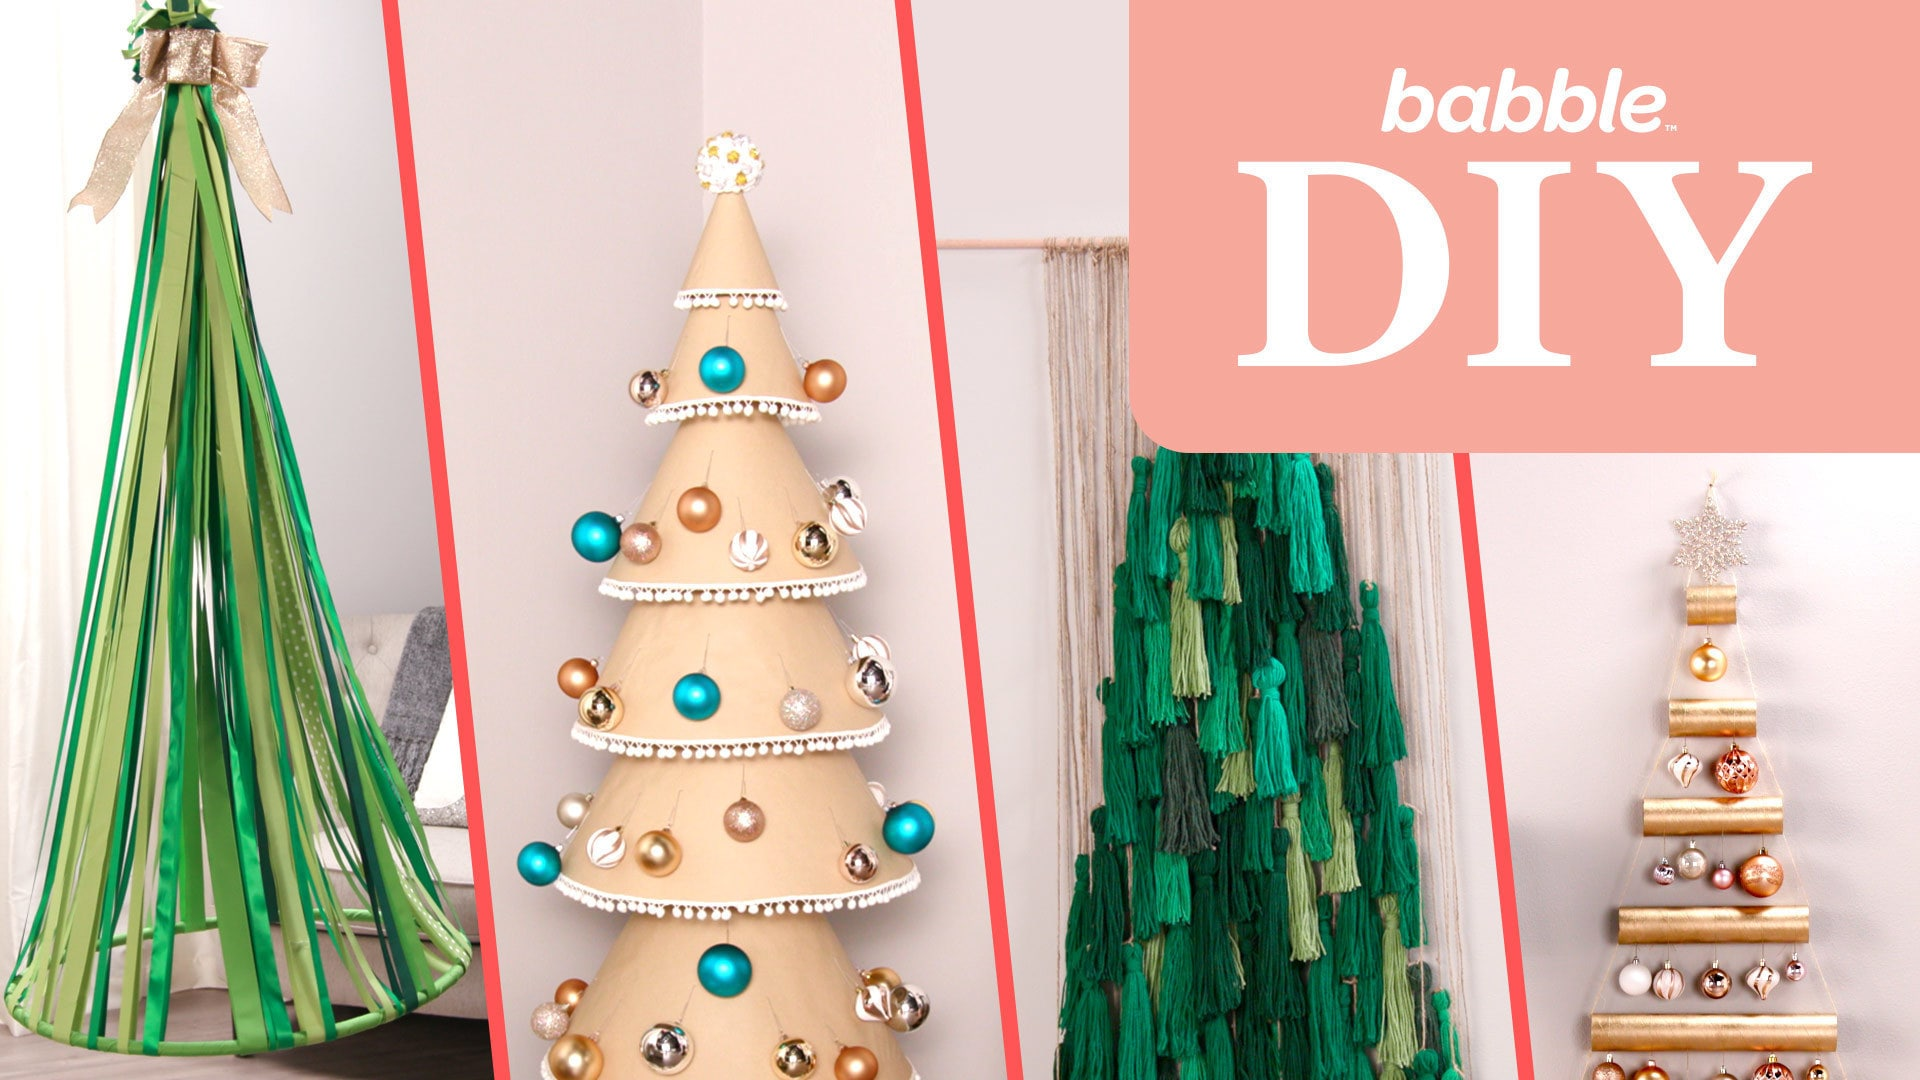 Alternative DIY Christmas Trees | Babble DIY